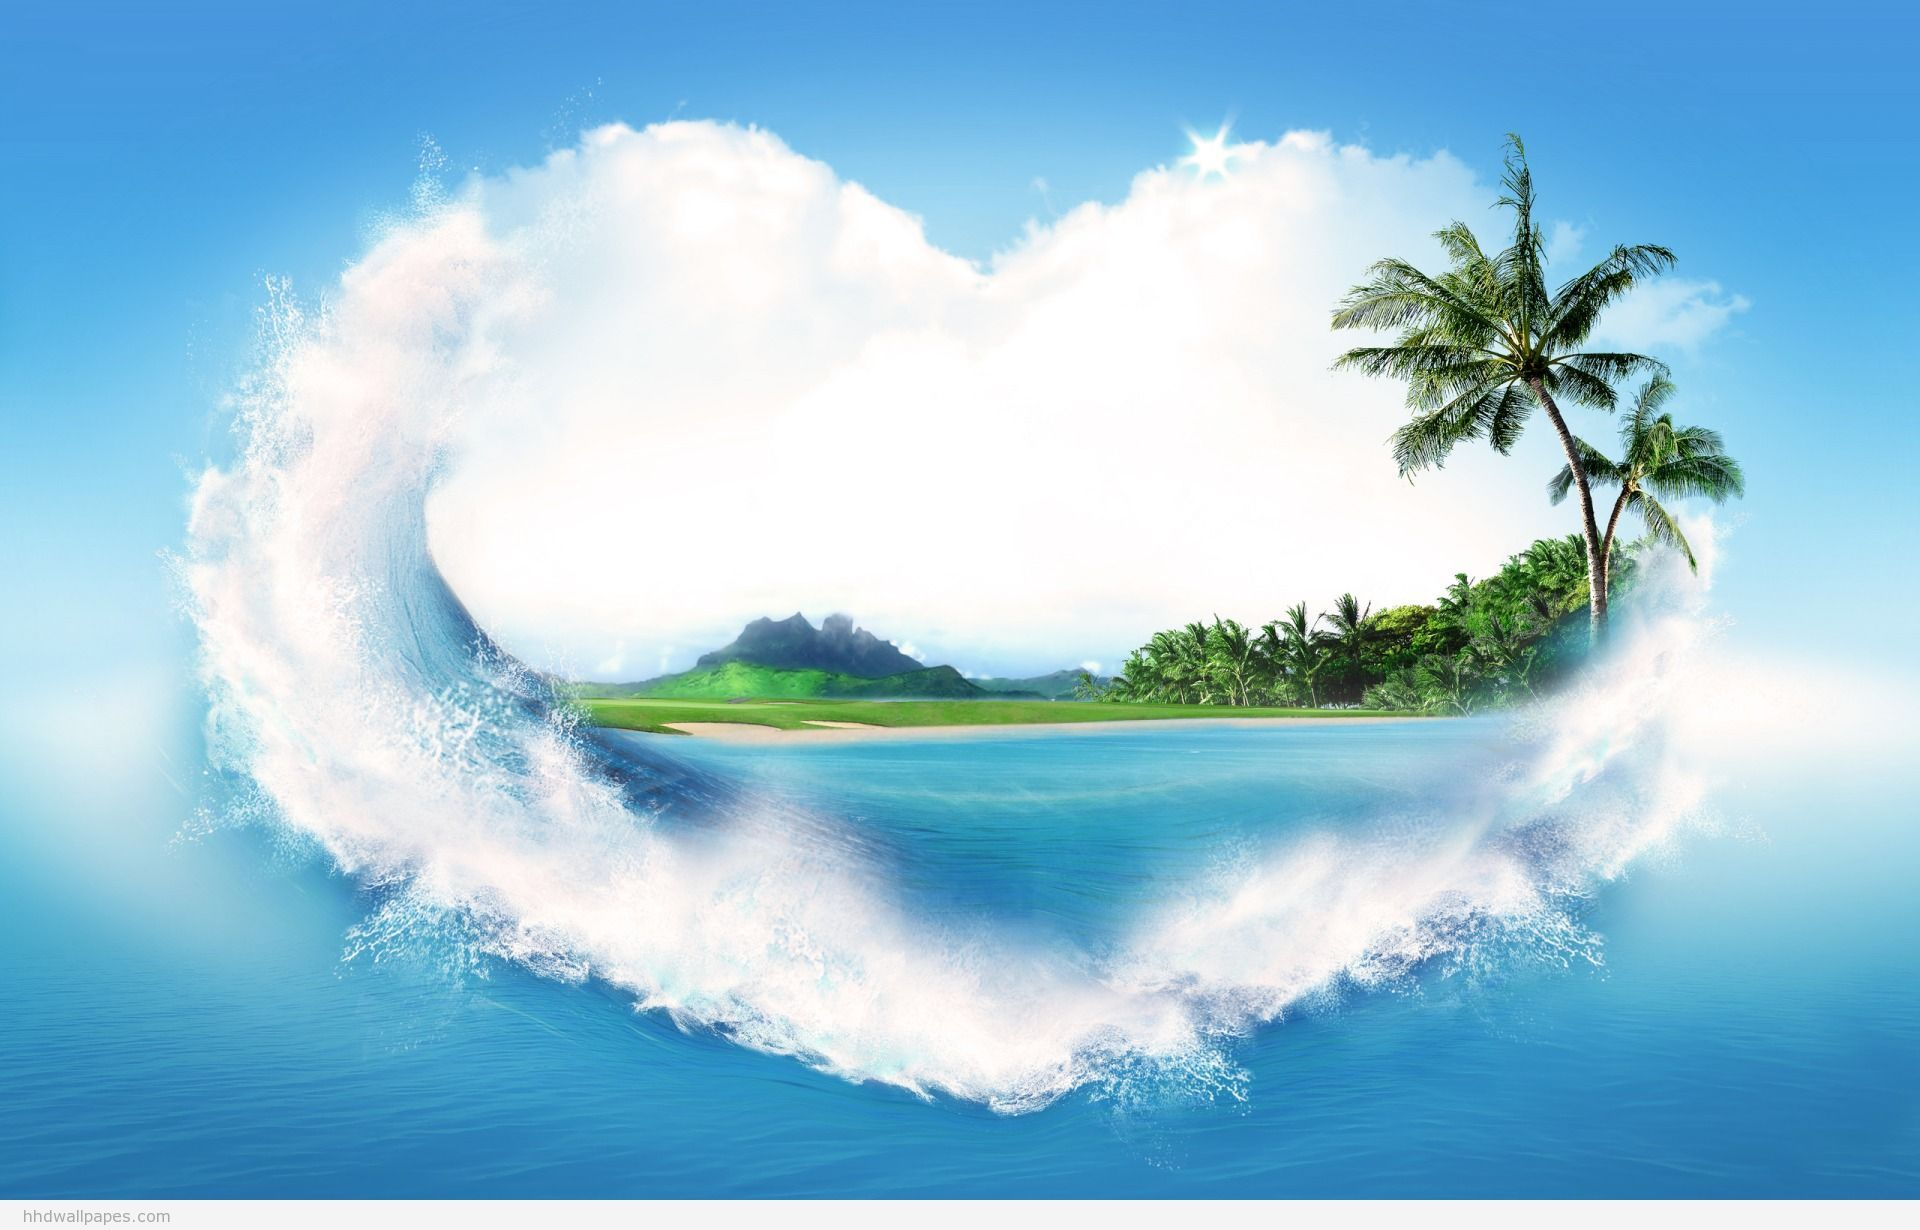 Heart Love Nature Wallpapers Photos For Desktop Best Nature Wallpapers Hd Nature Wallpapers Nature Wallpaper